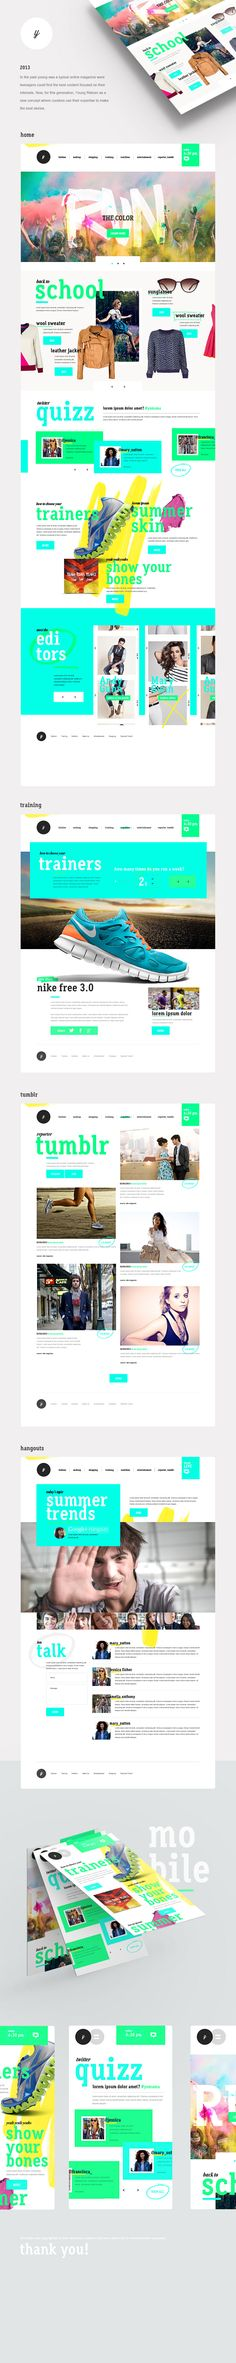 online magazine for young audiences by Isabel Sousa.